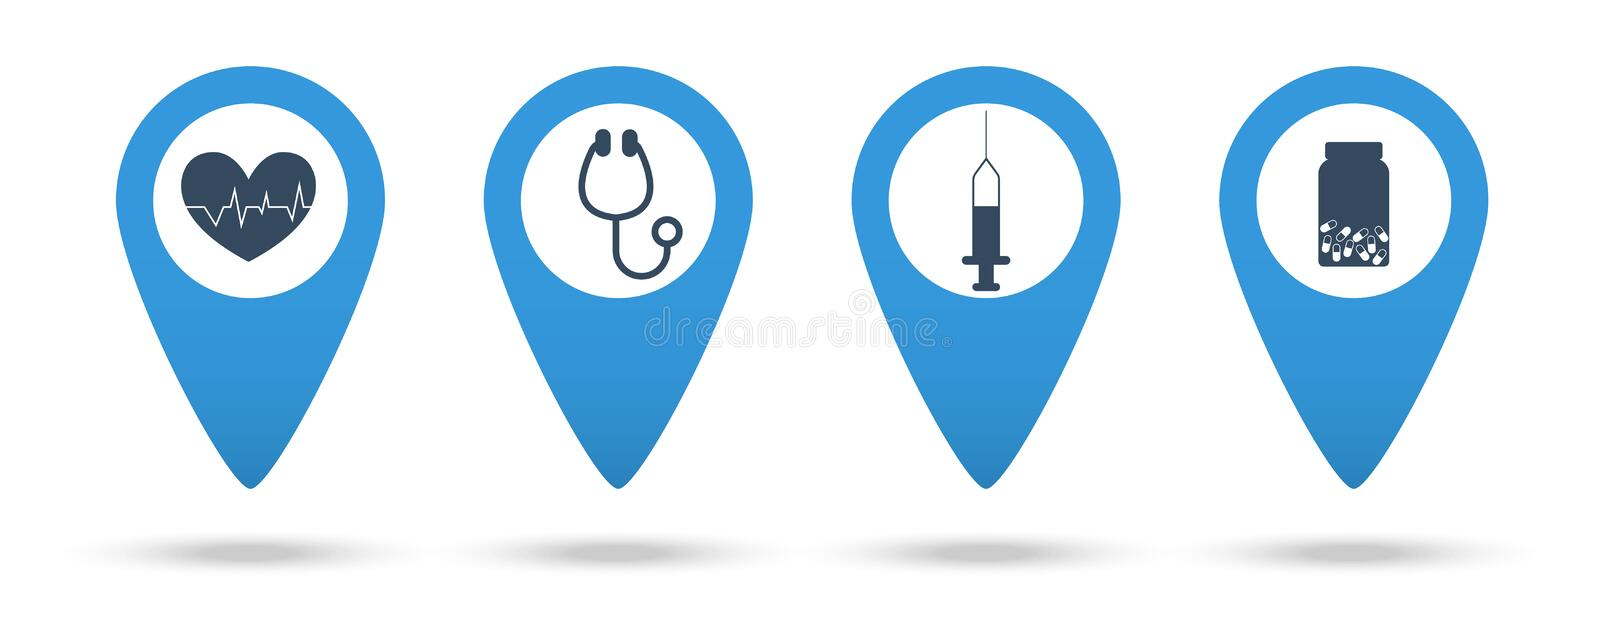 Medical locations. Mapping pins icons medical. Stethoscope, syringe, heartbeat, pills icons stock illustration